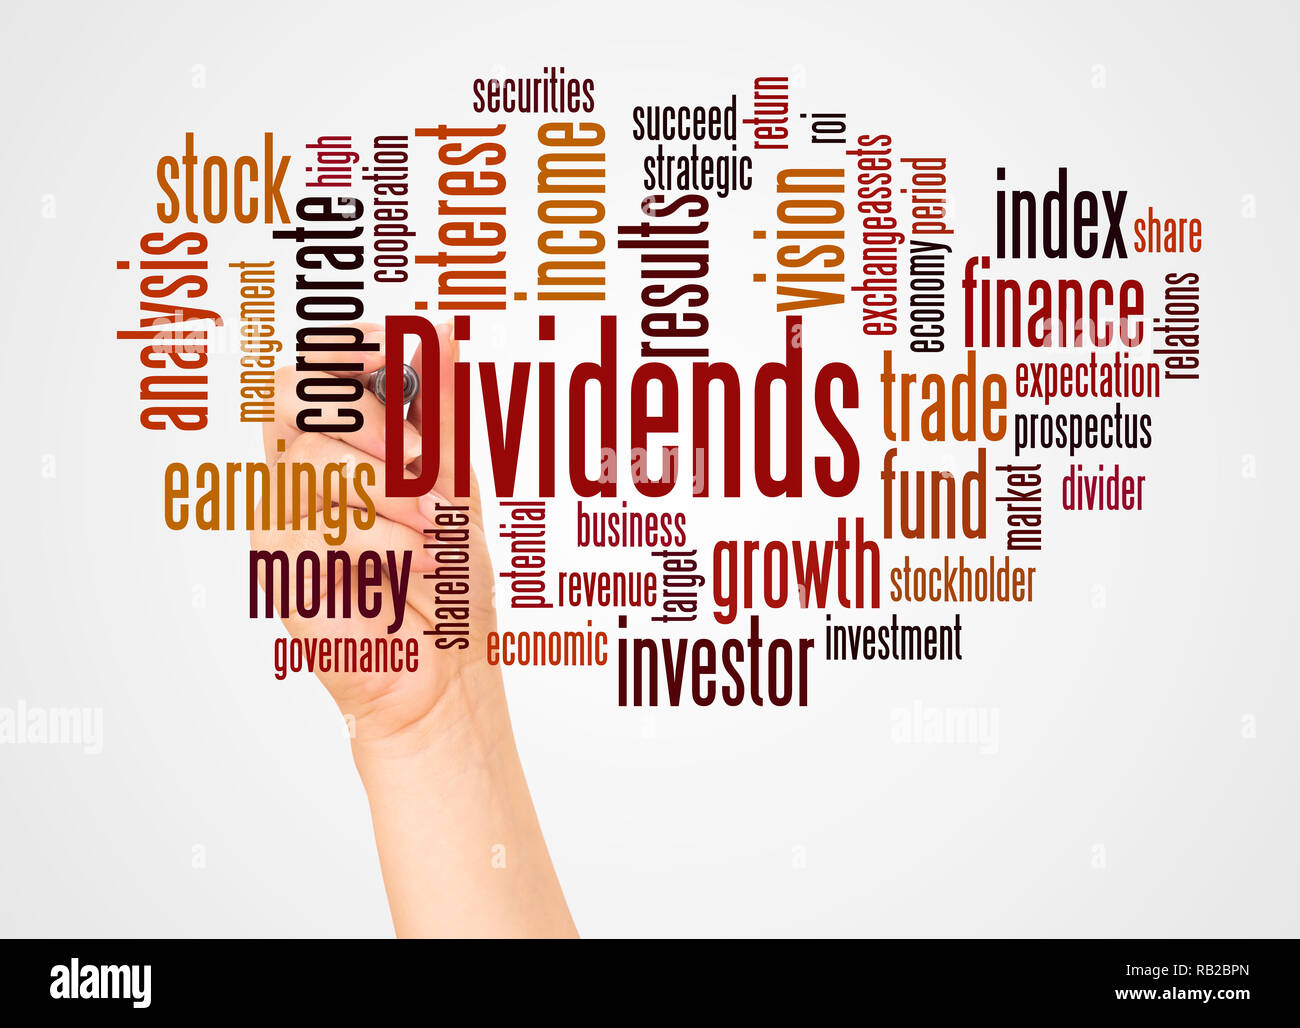 Potential Divider Stock Photos Images Alamy Circuit Of A Voltage Also Called Is Dividends Word Cloud And Hand With Marker Concept On White Background Image